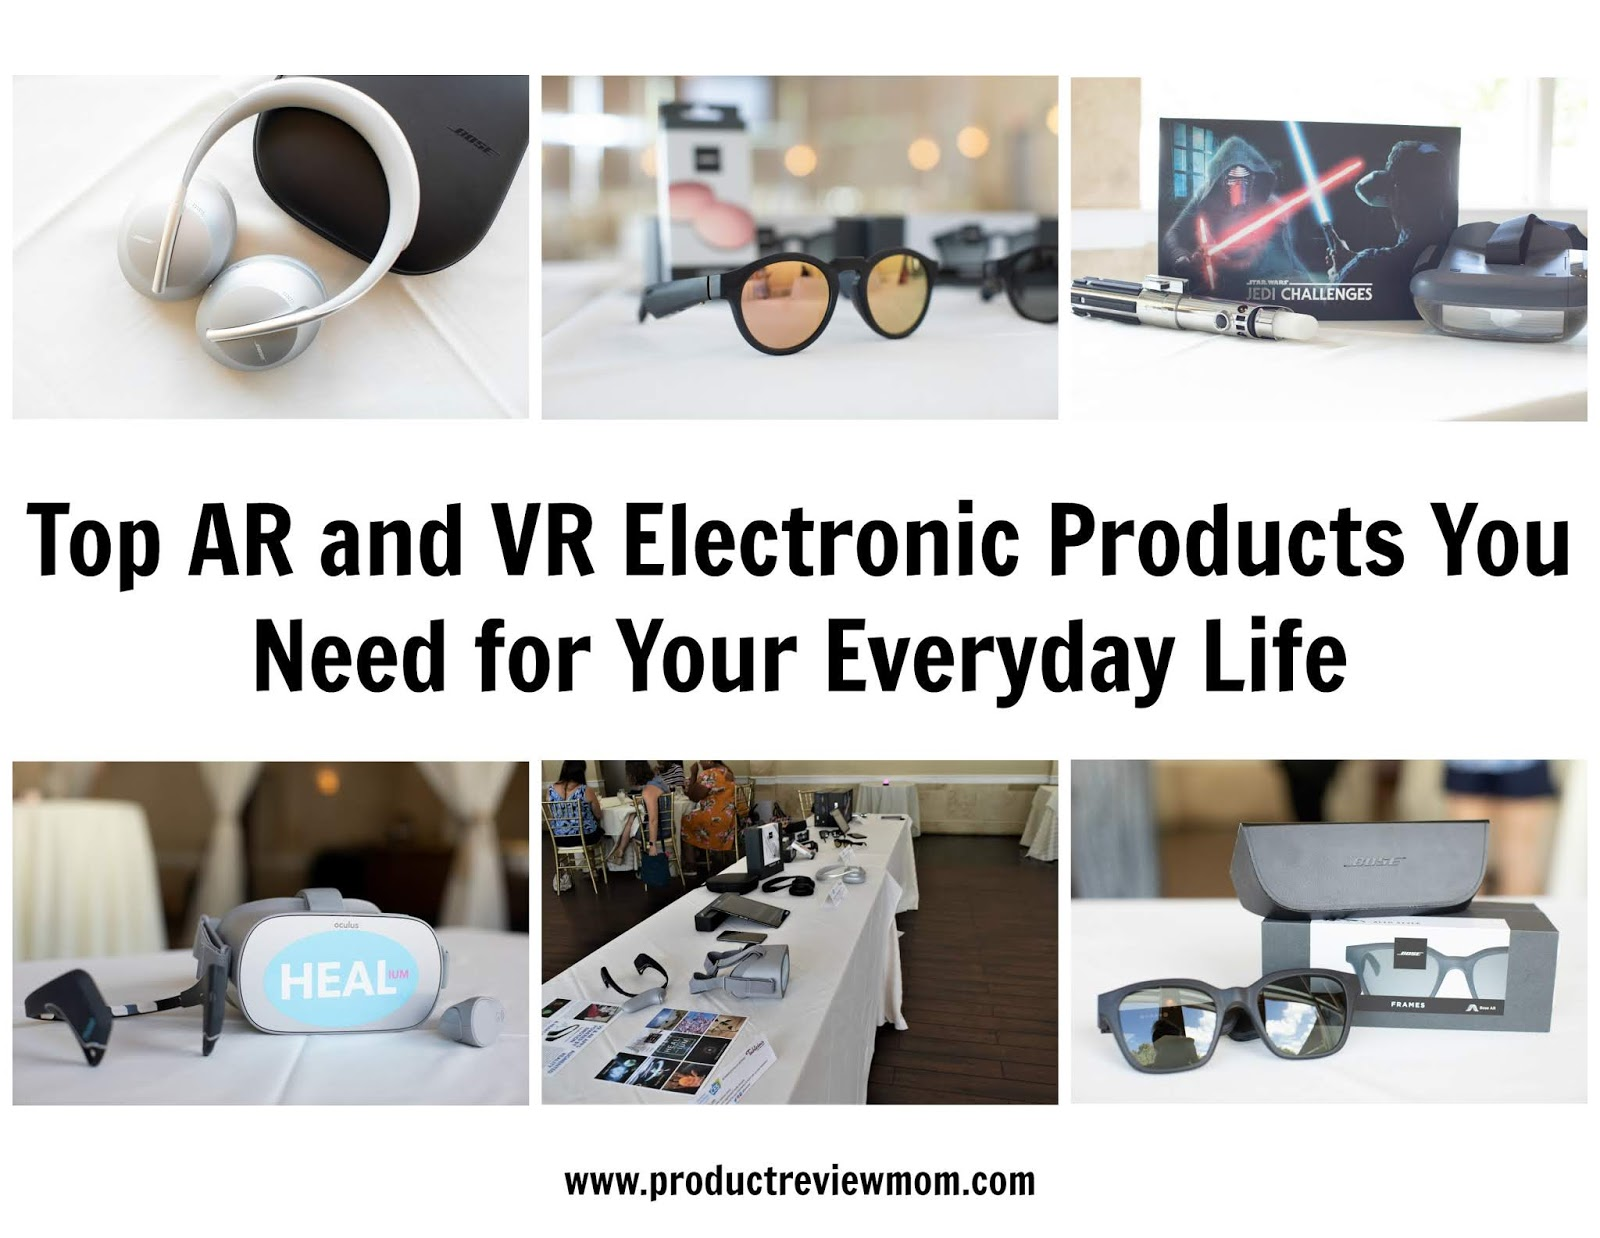 Top AR and VR Electronic Products You Need for Your Everyday Life